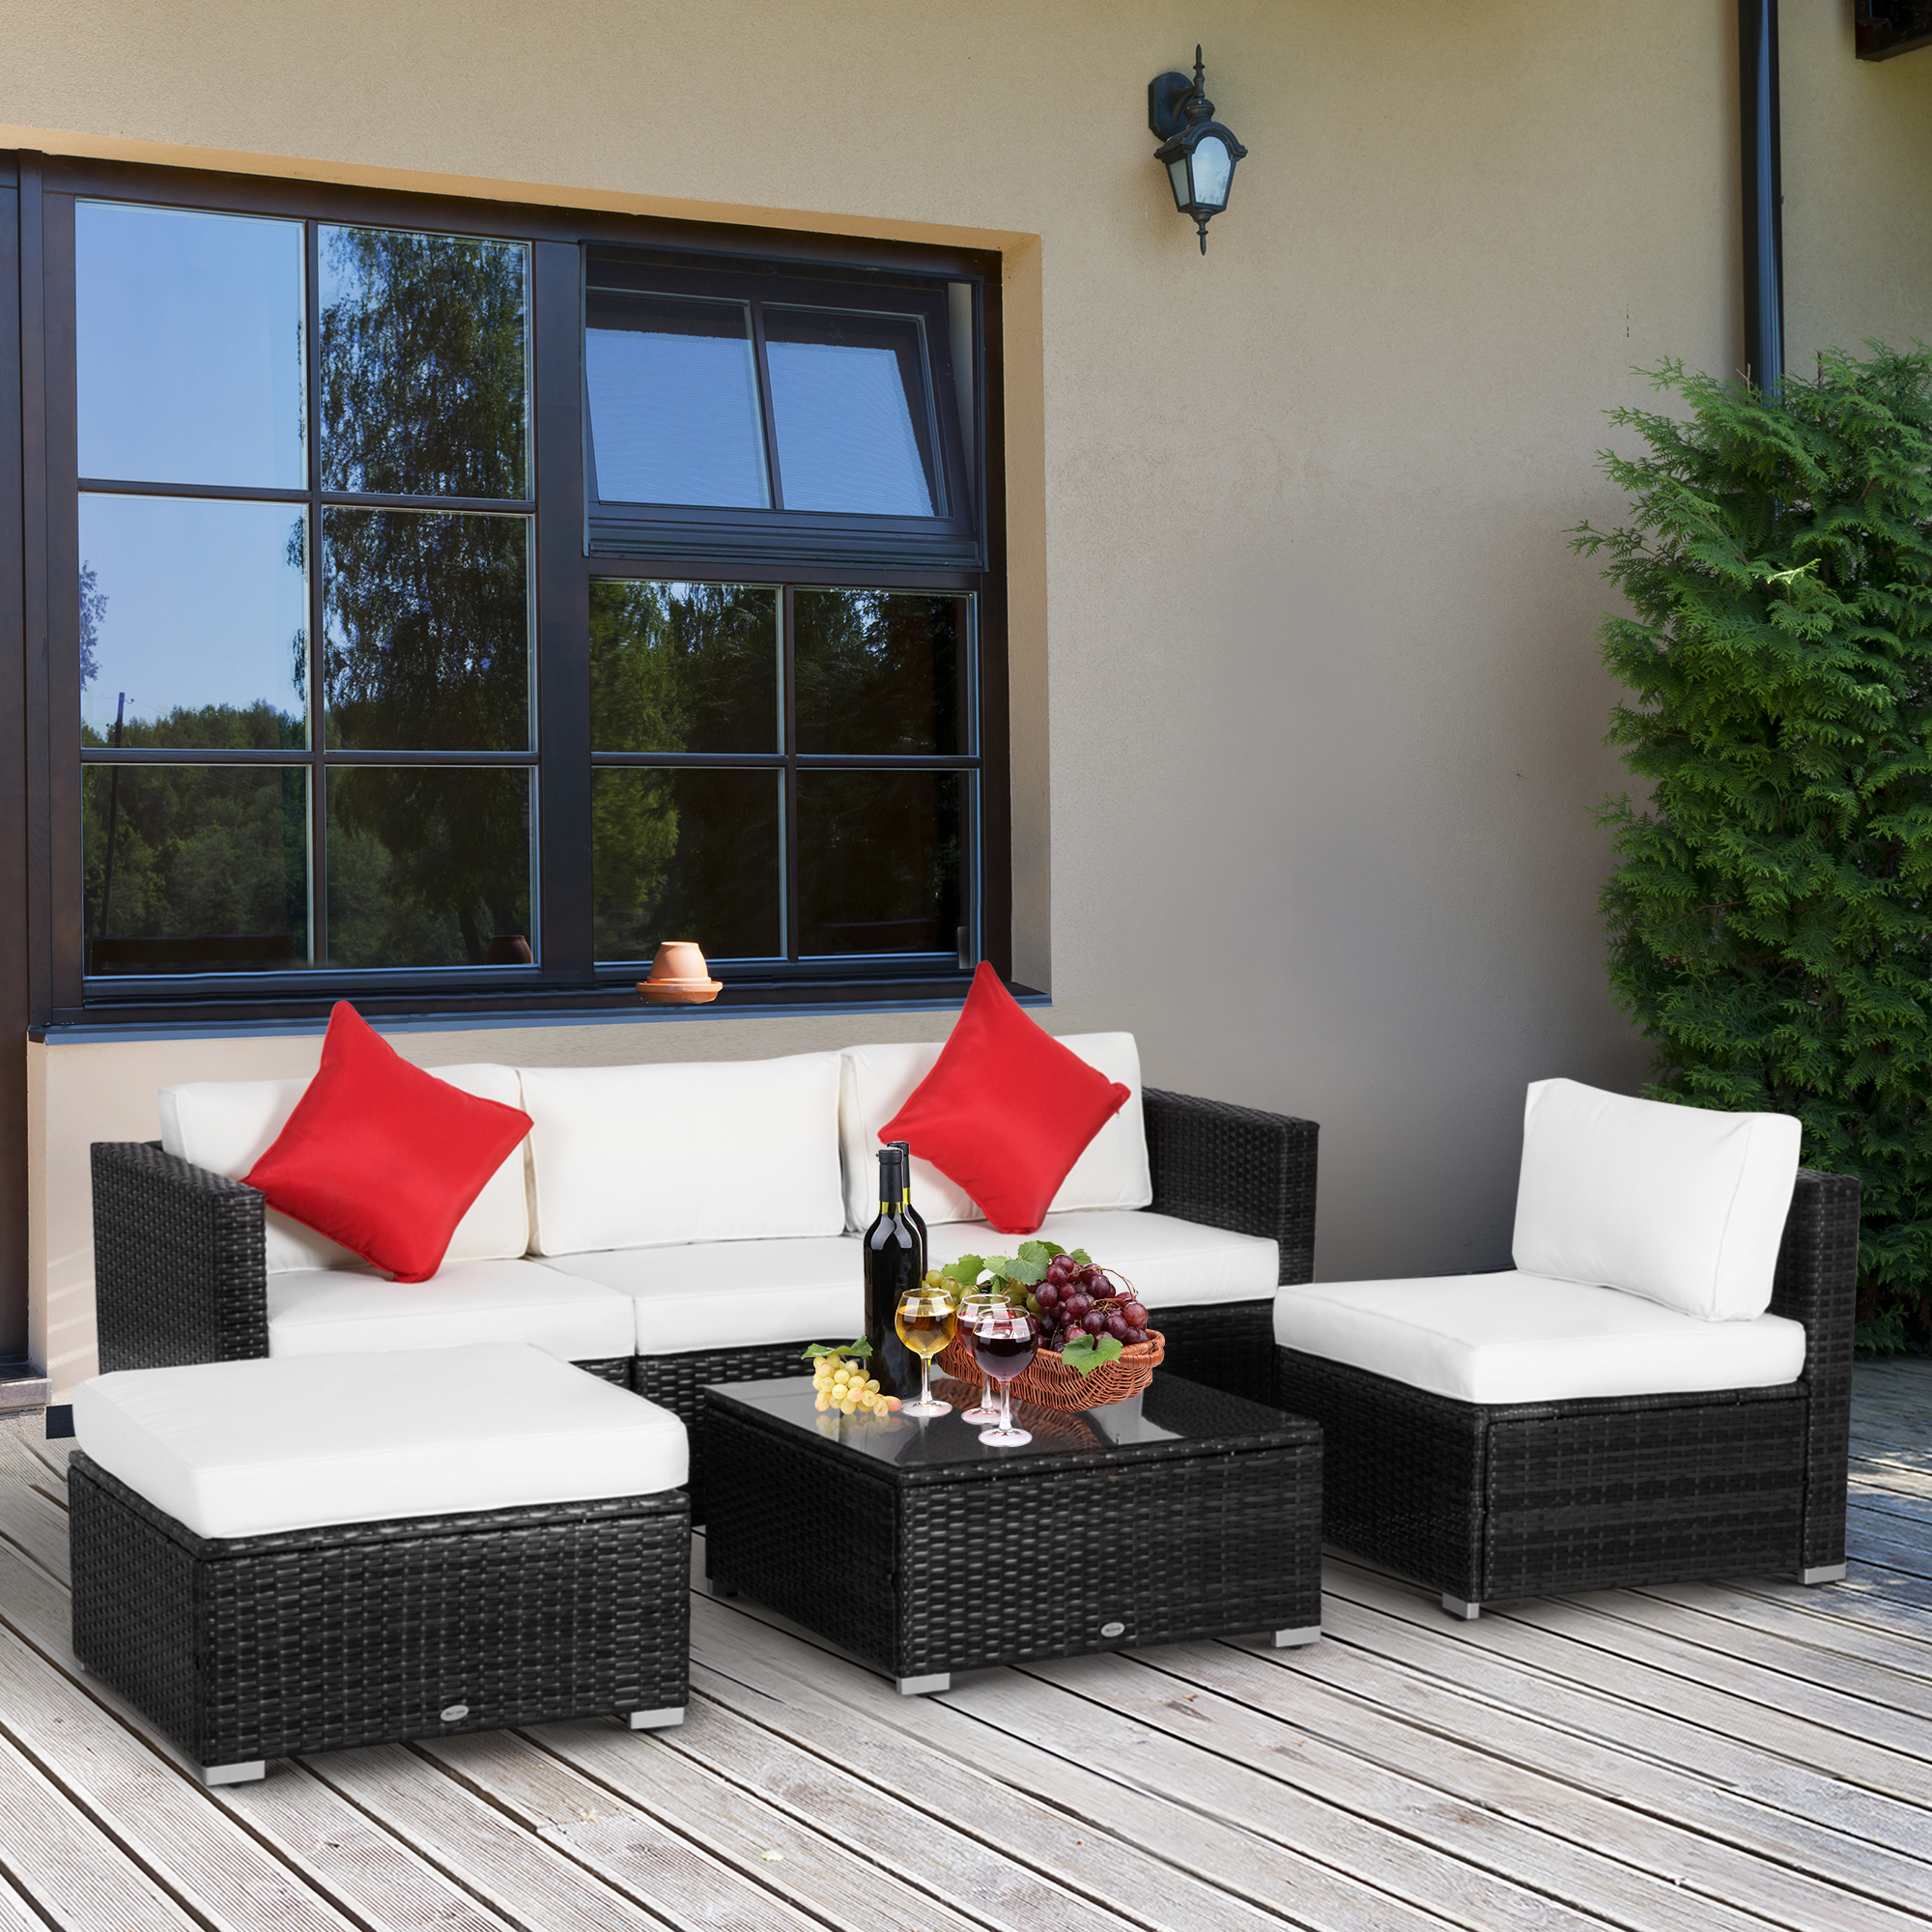 details about outsunny 6pc rattan wicker patio sofa set sectional garden yard couch furniture